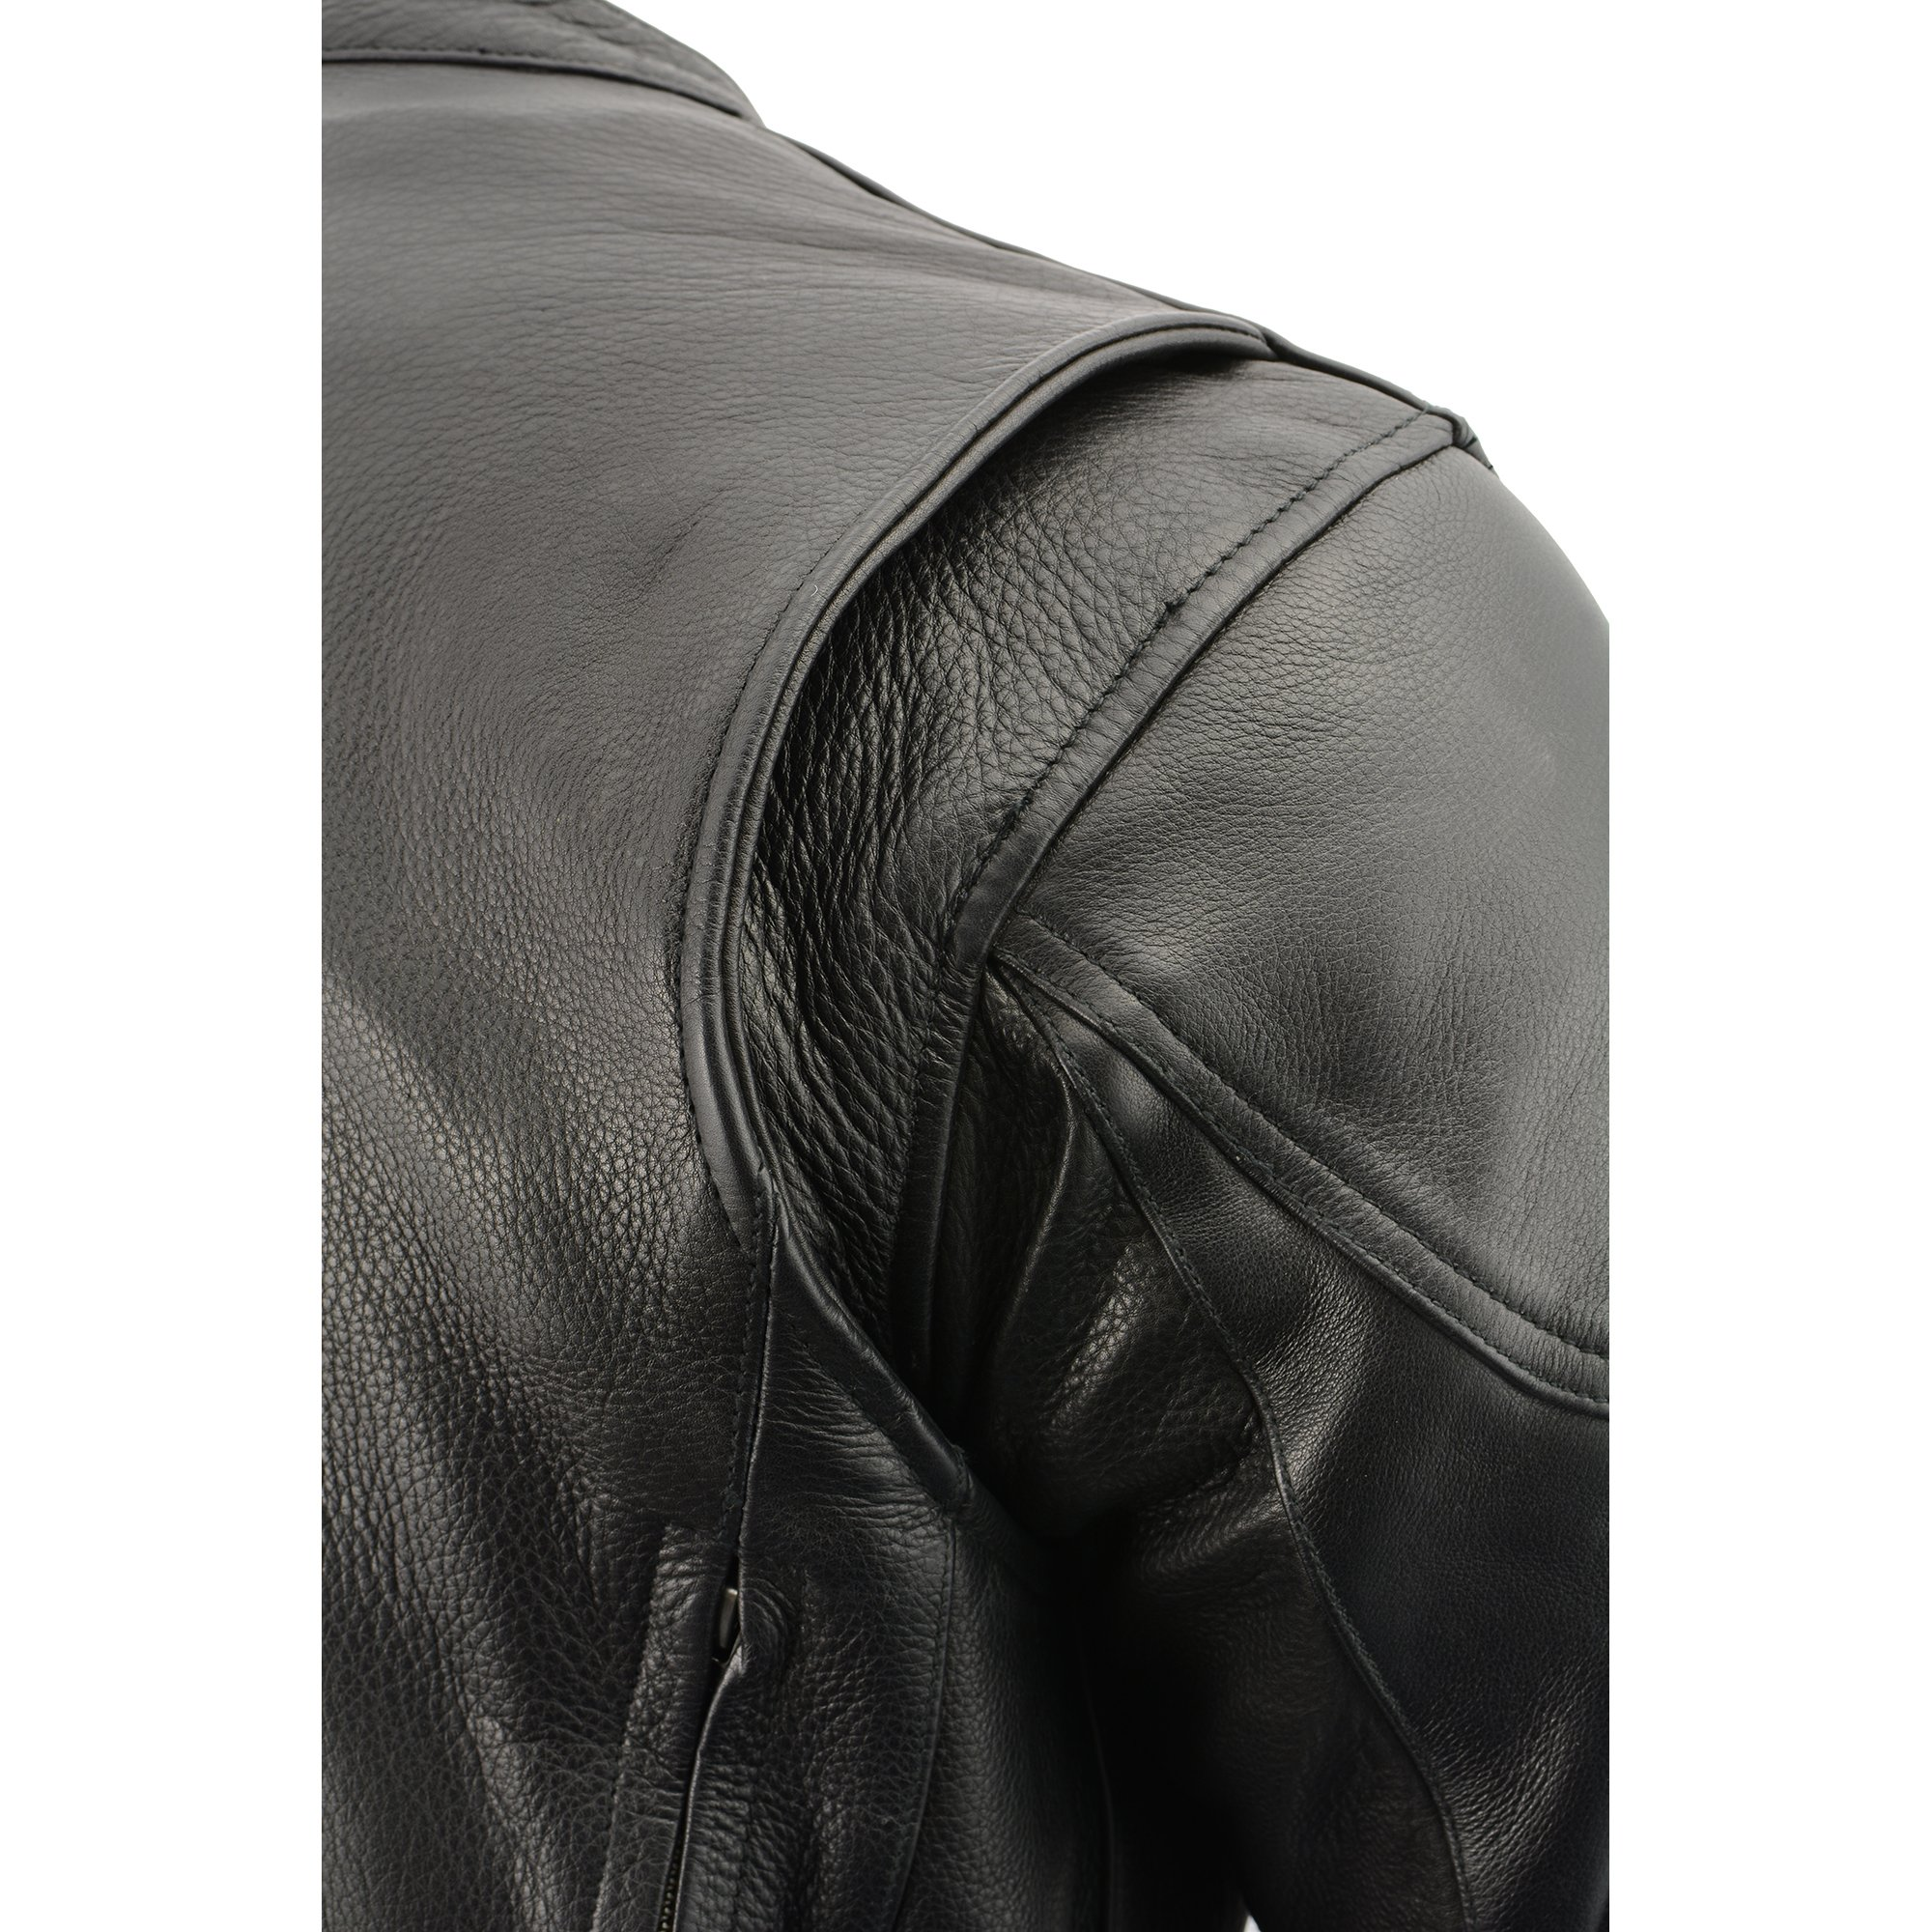 Milwaukee Leather Men's Side Lace Vented Scooter Jacket (Black, 5X-LargeTall) by Milwaukee Leather (Image #14)